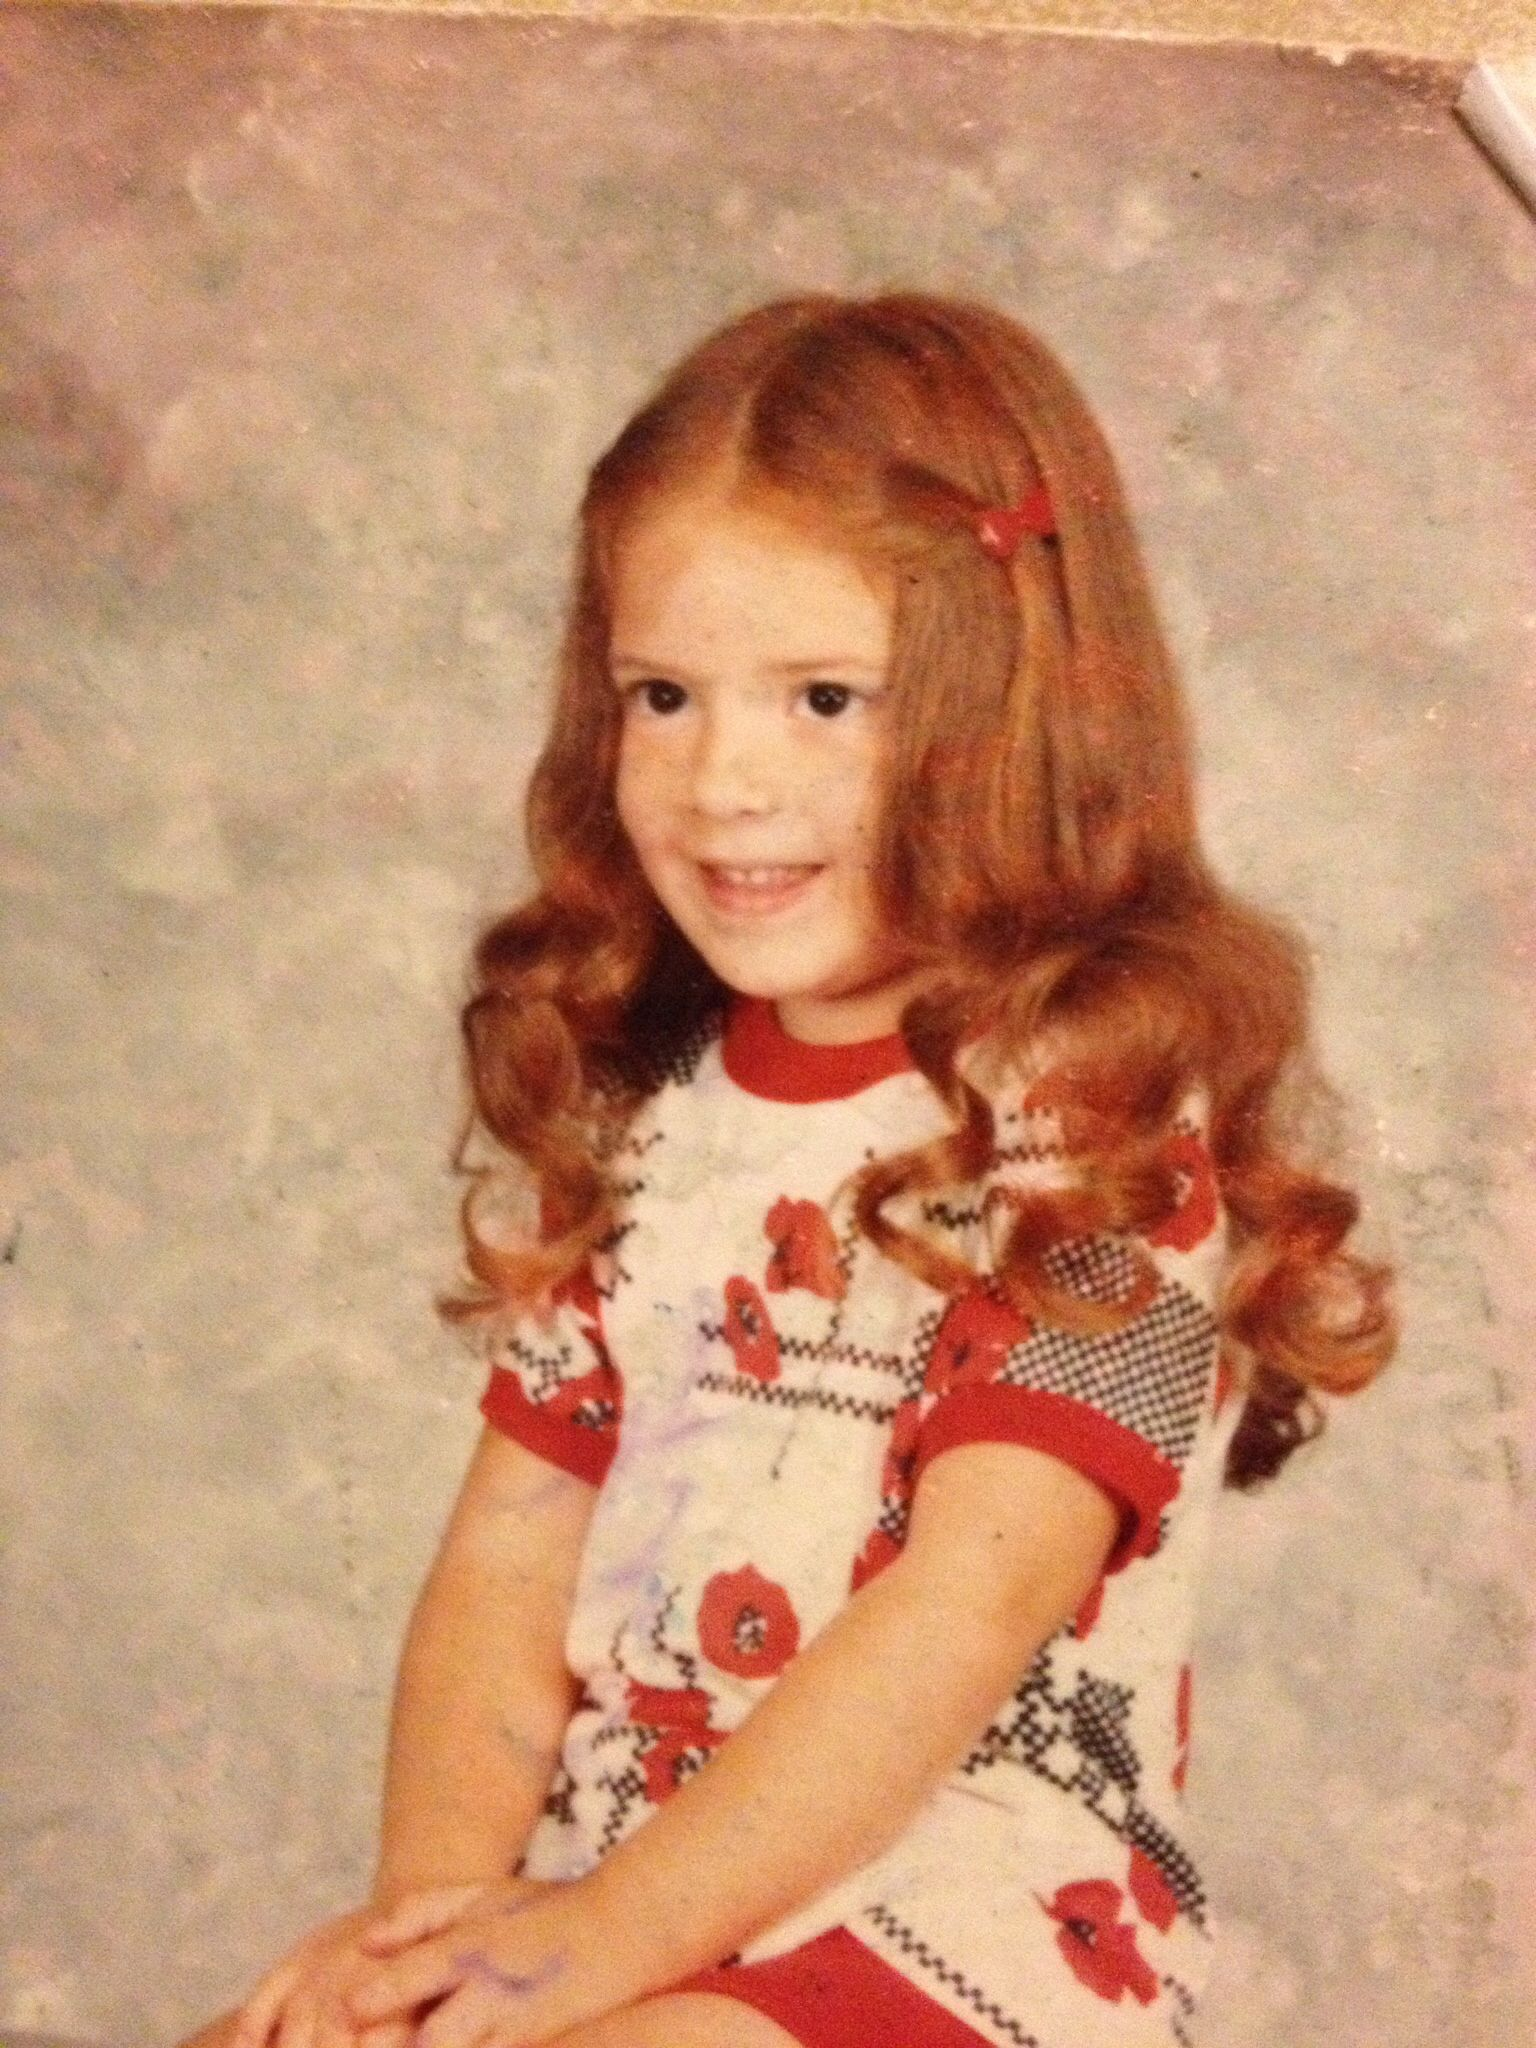 Who is this little redheaded girl?